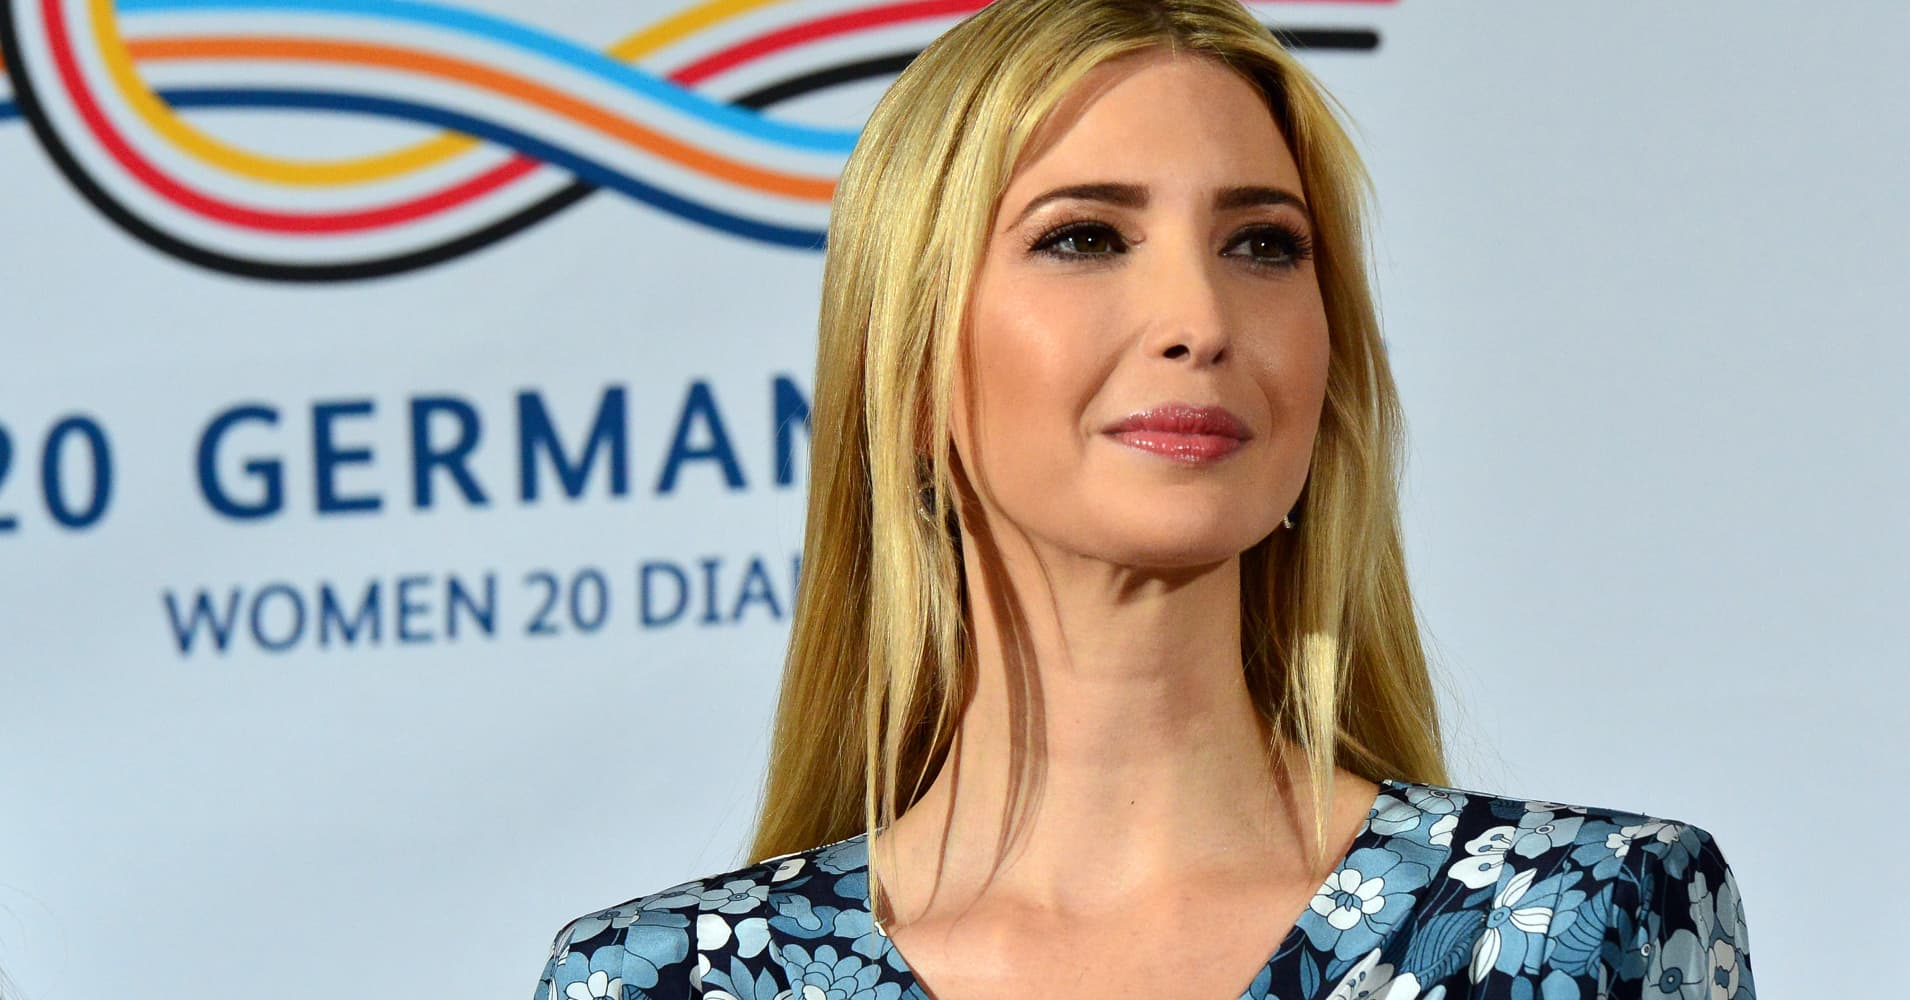 'I don't like the word 'accomplice,'' says Ivanka Trump